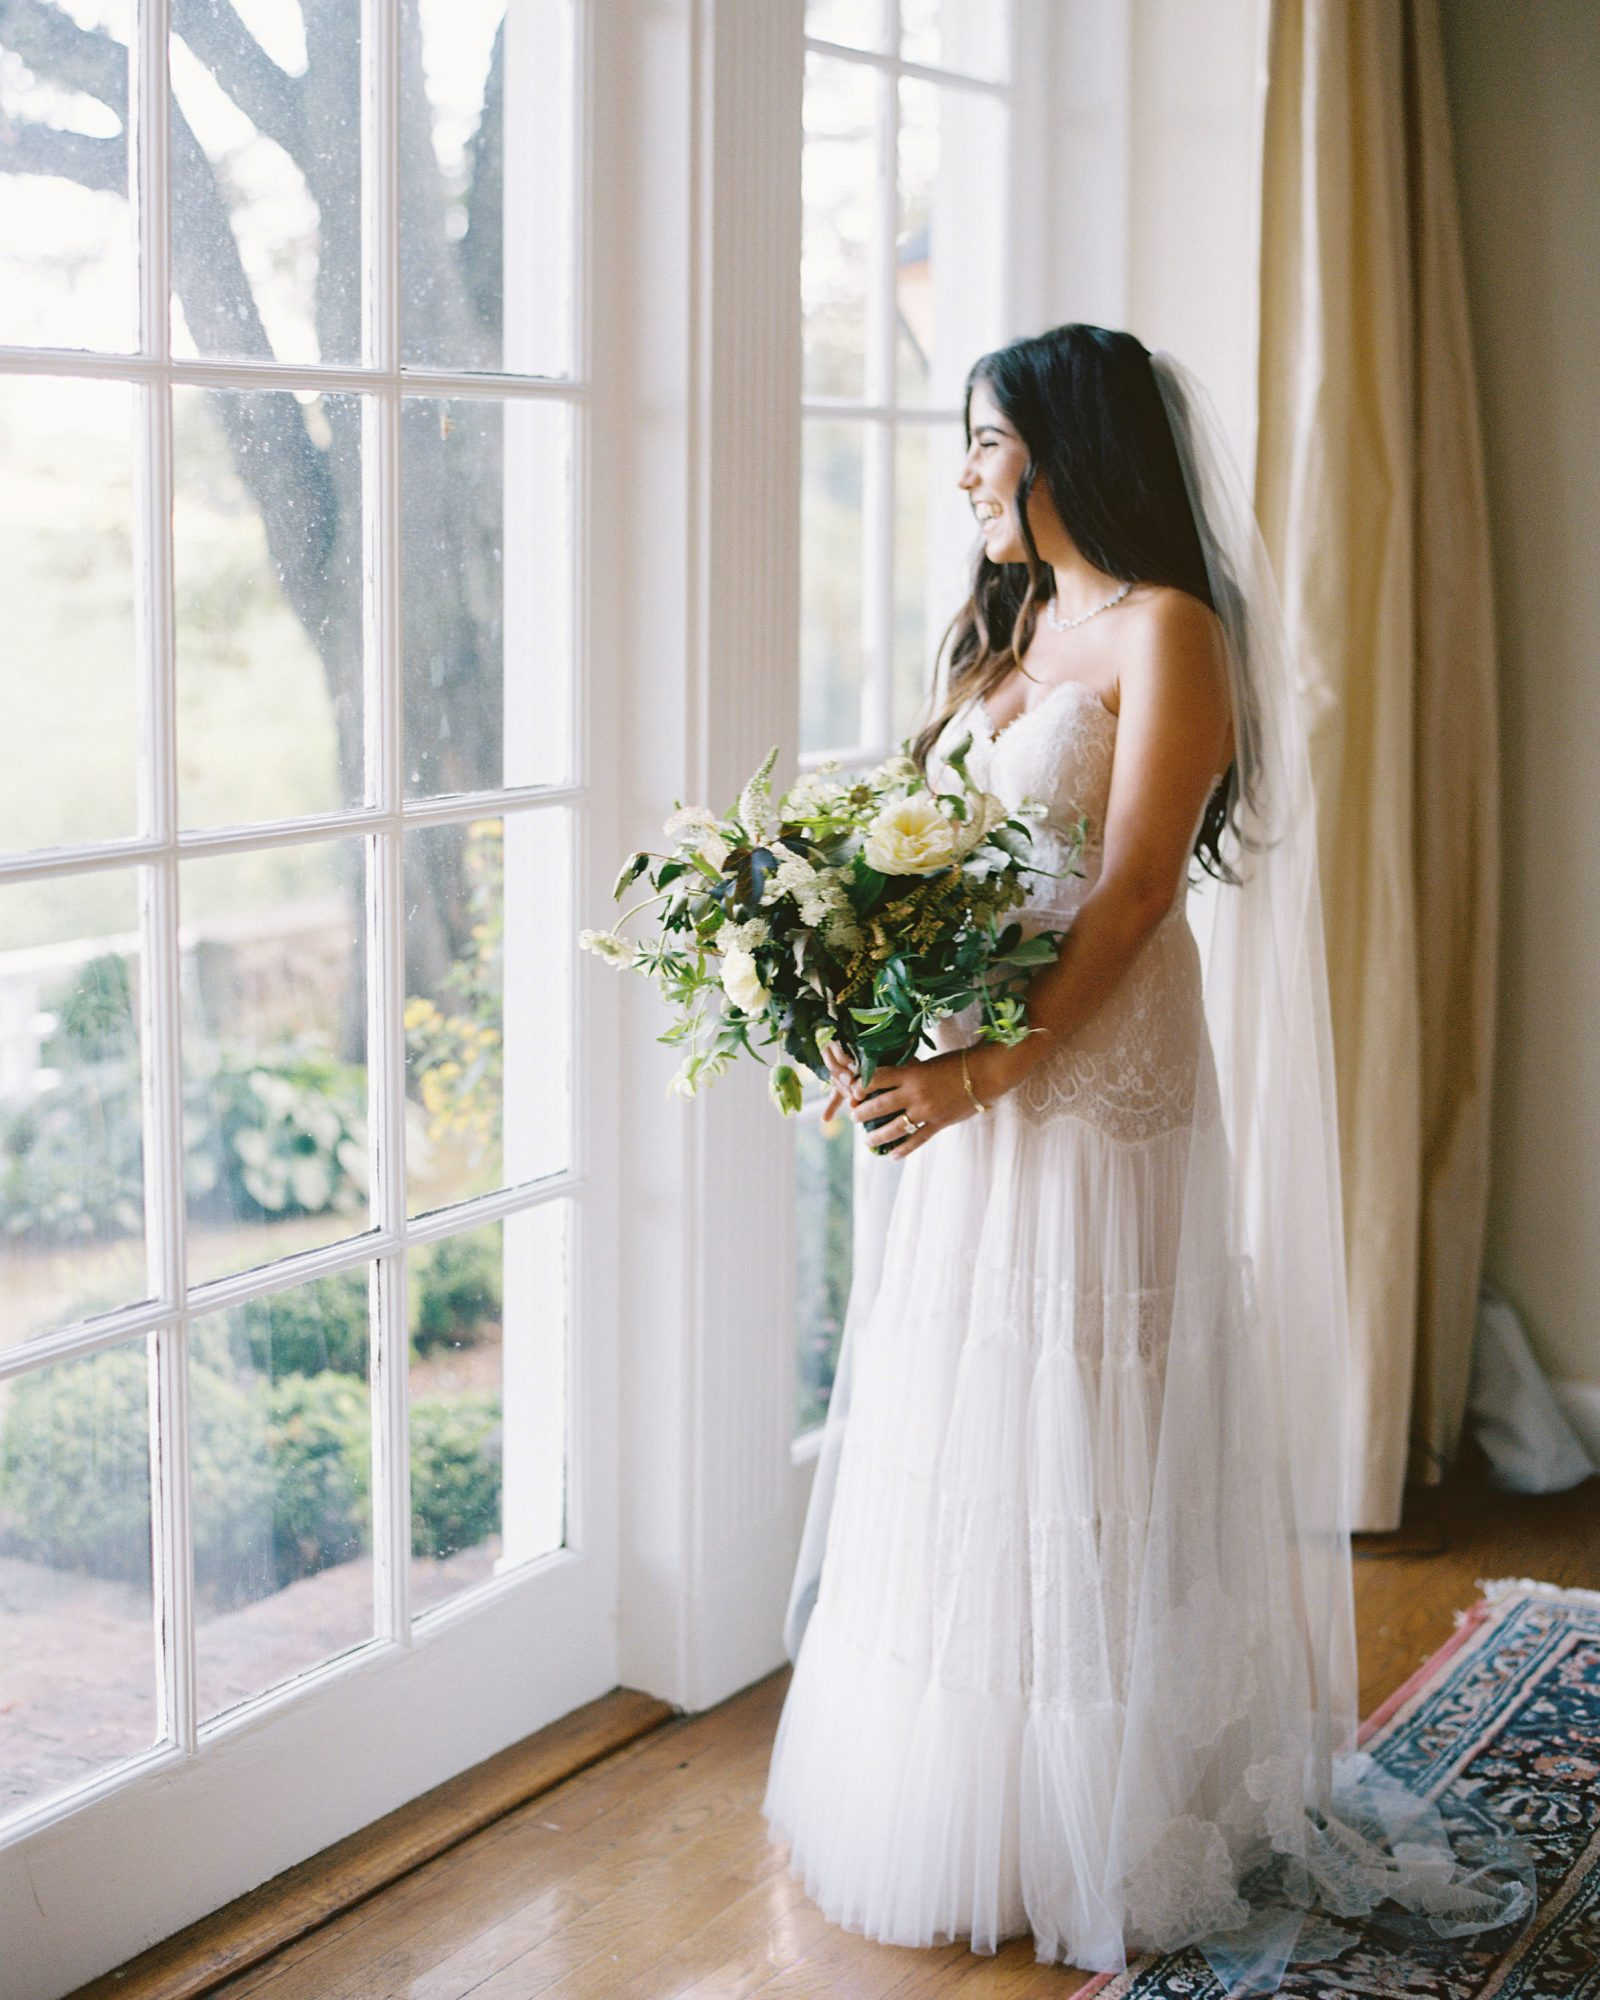 bride looking out window in gown holding white floral bouquet